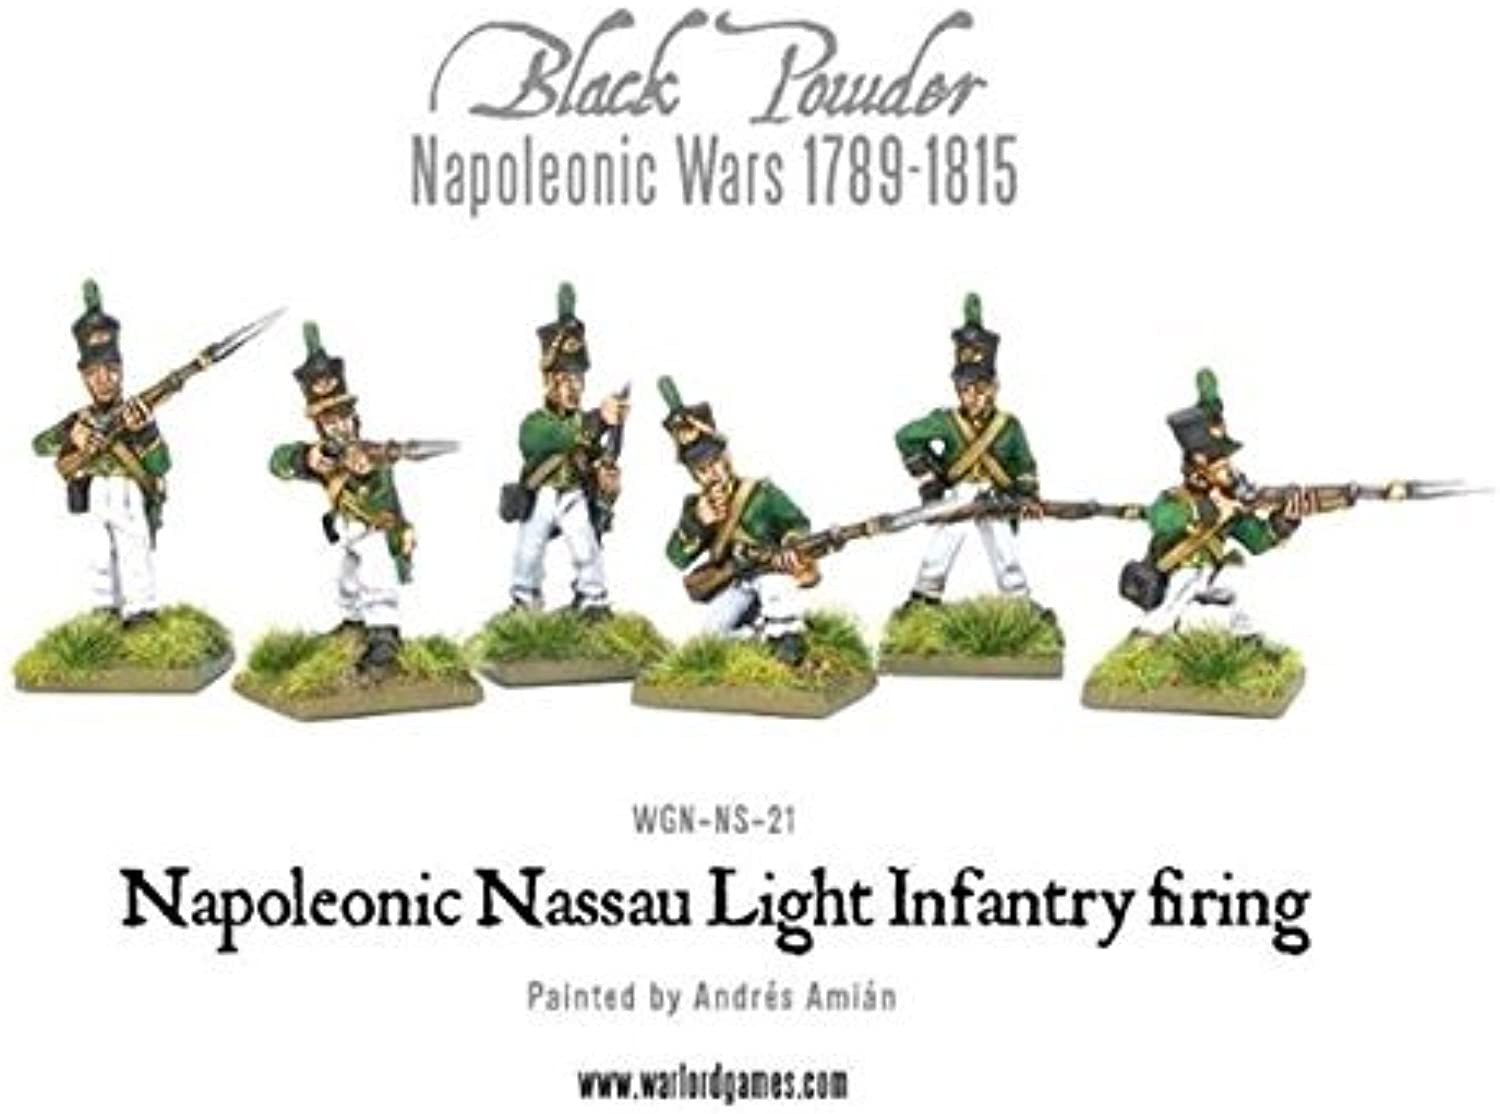 Napoleonic Nassau Light Infantry firing